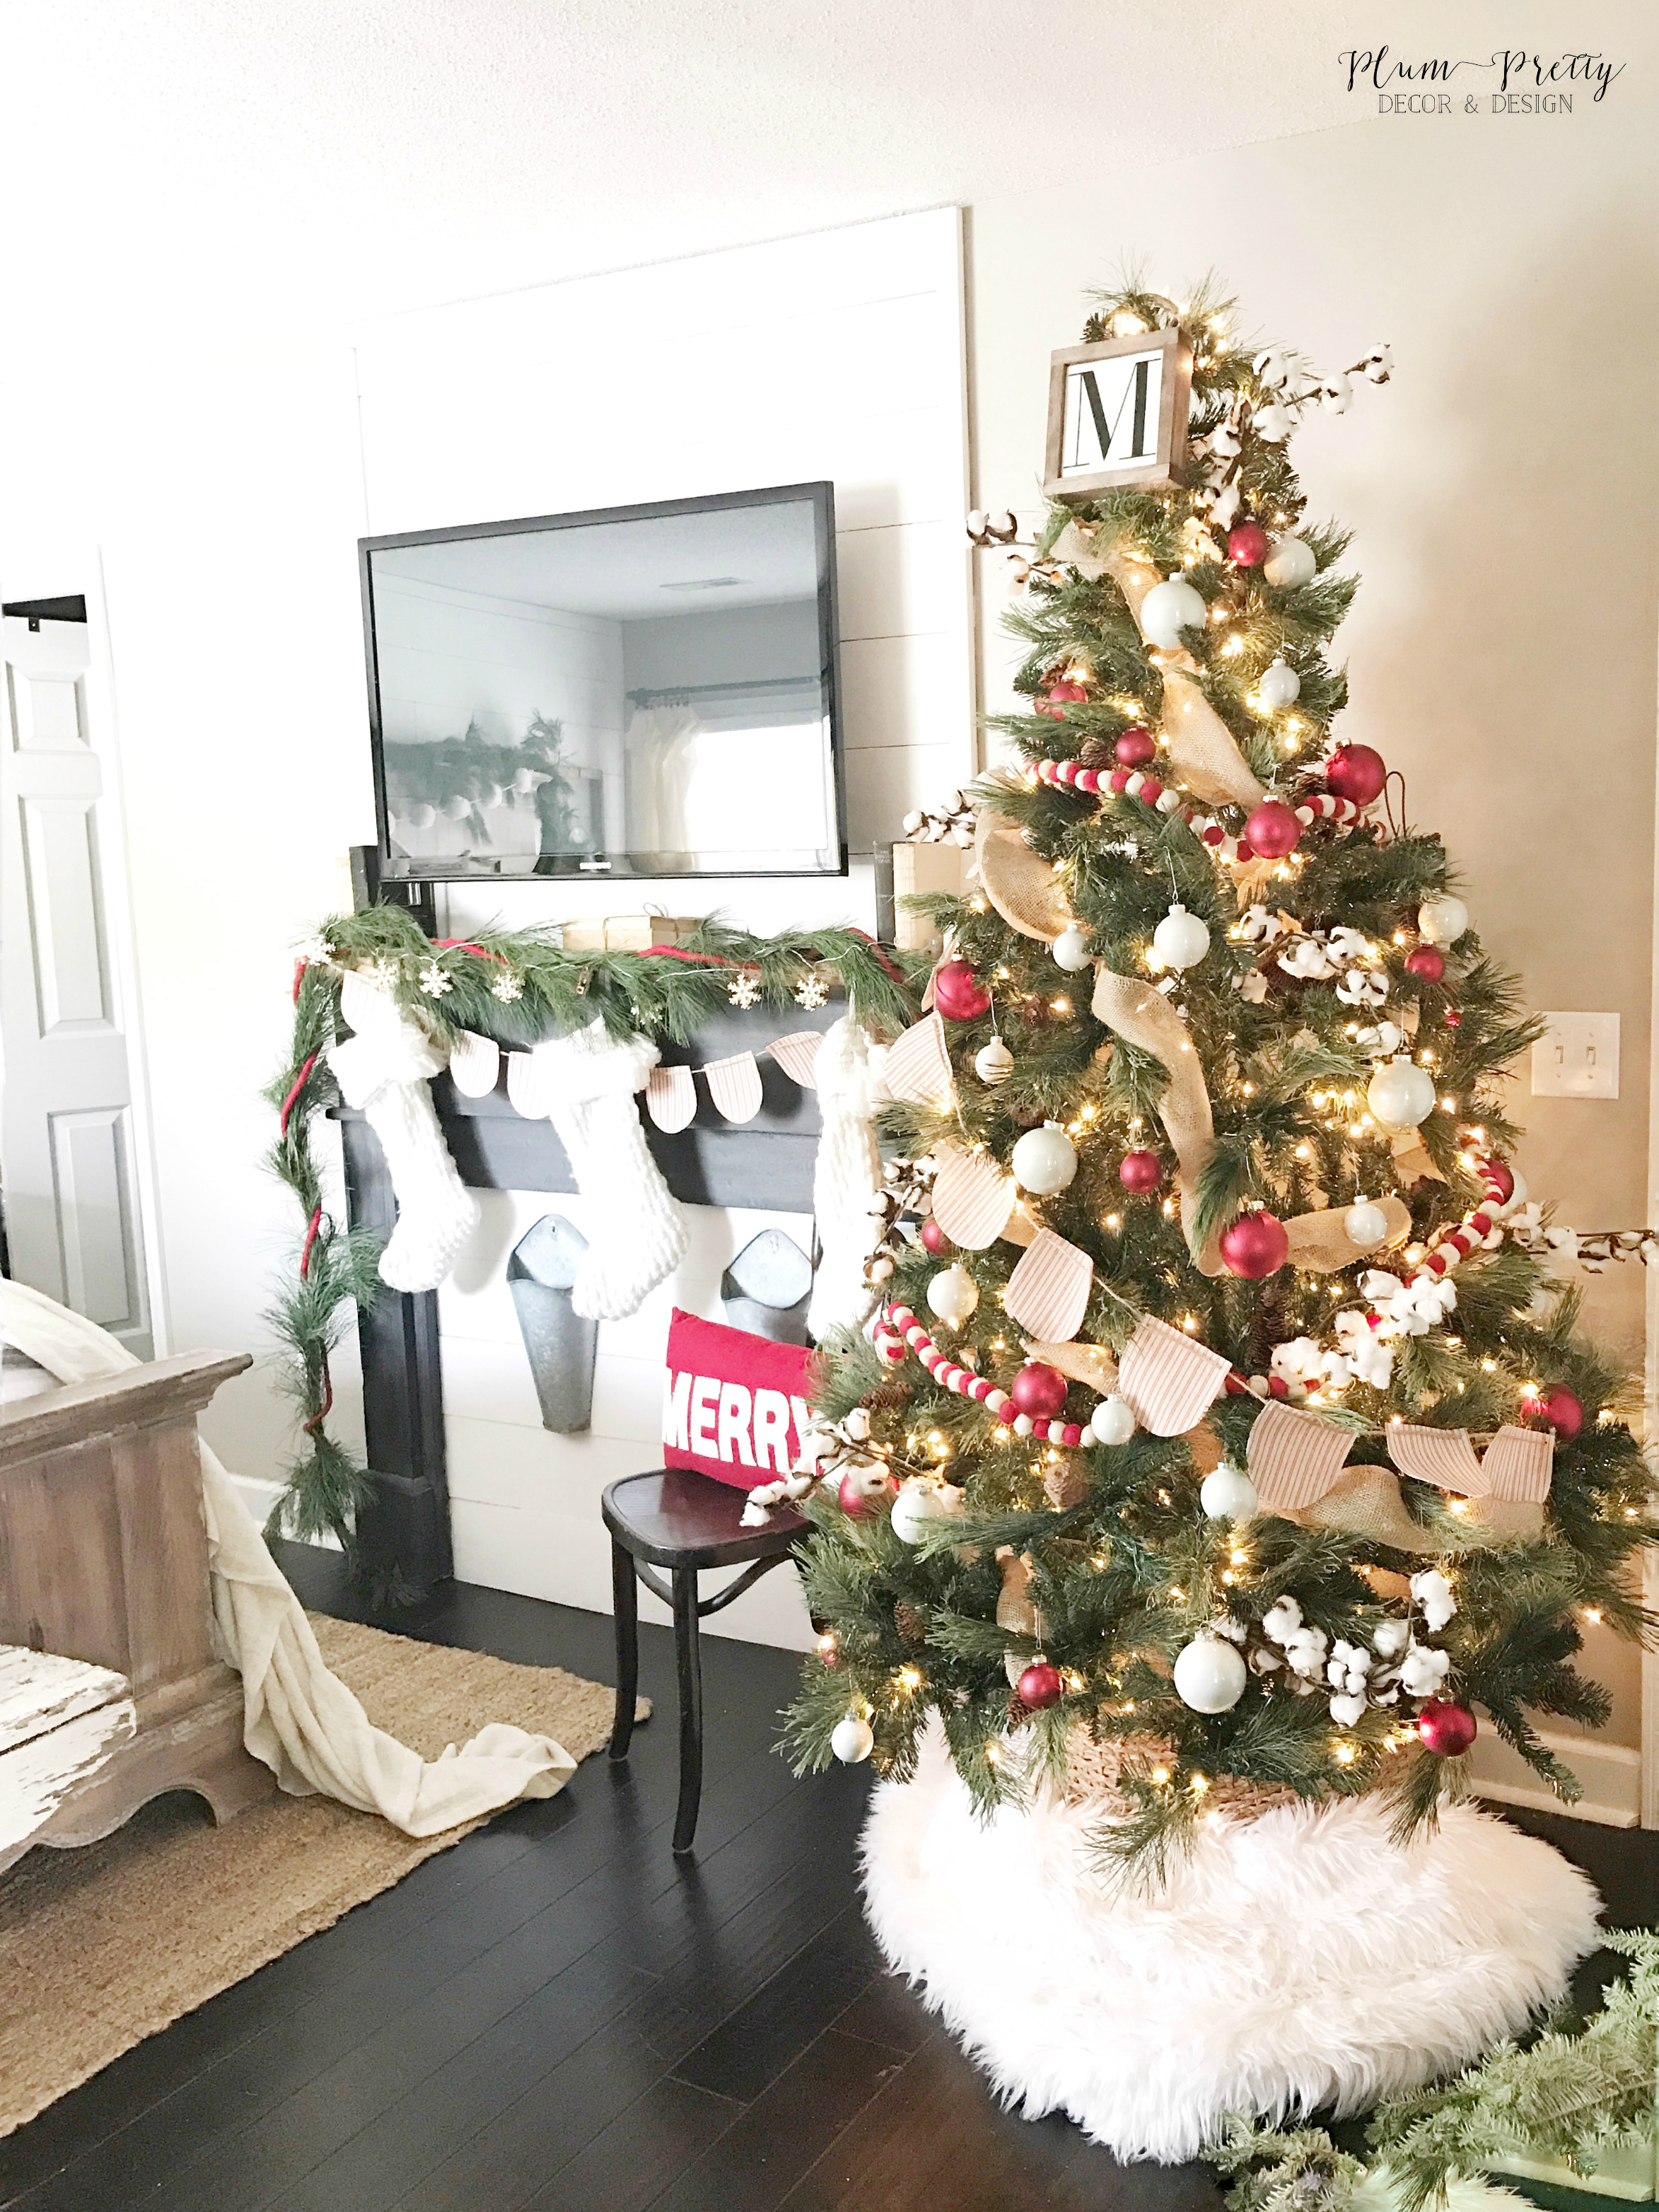 Farmhouse Christmas Bedroom Tour- Red and White Christmas Tree- By Kayla Miller of Plum Pretty Decor and Design